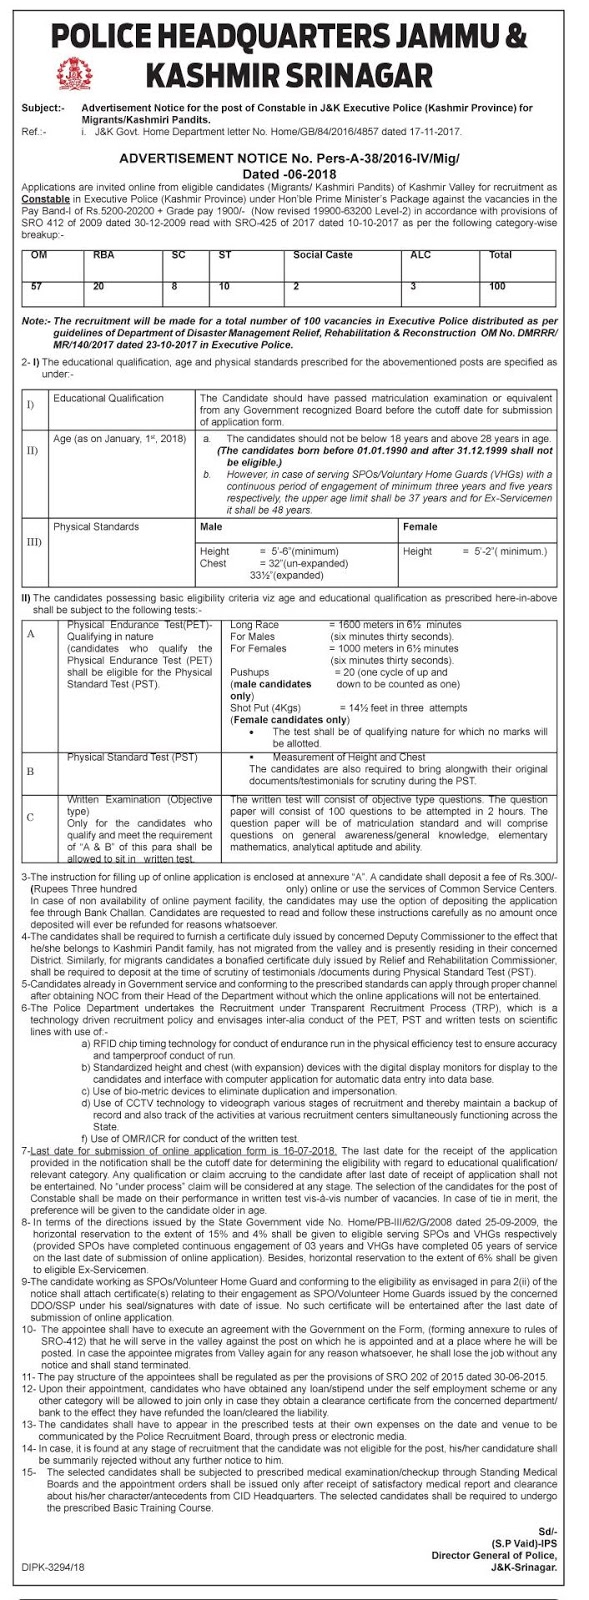 J&K Executive Police Recruitment 2018 for Constables